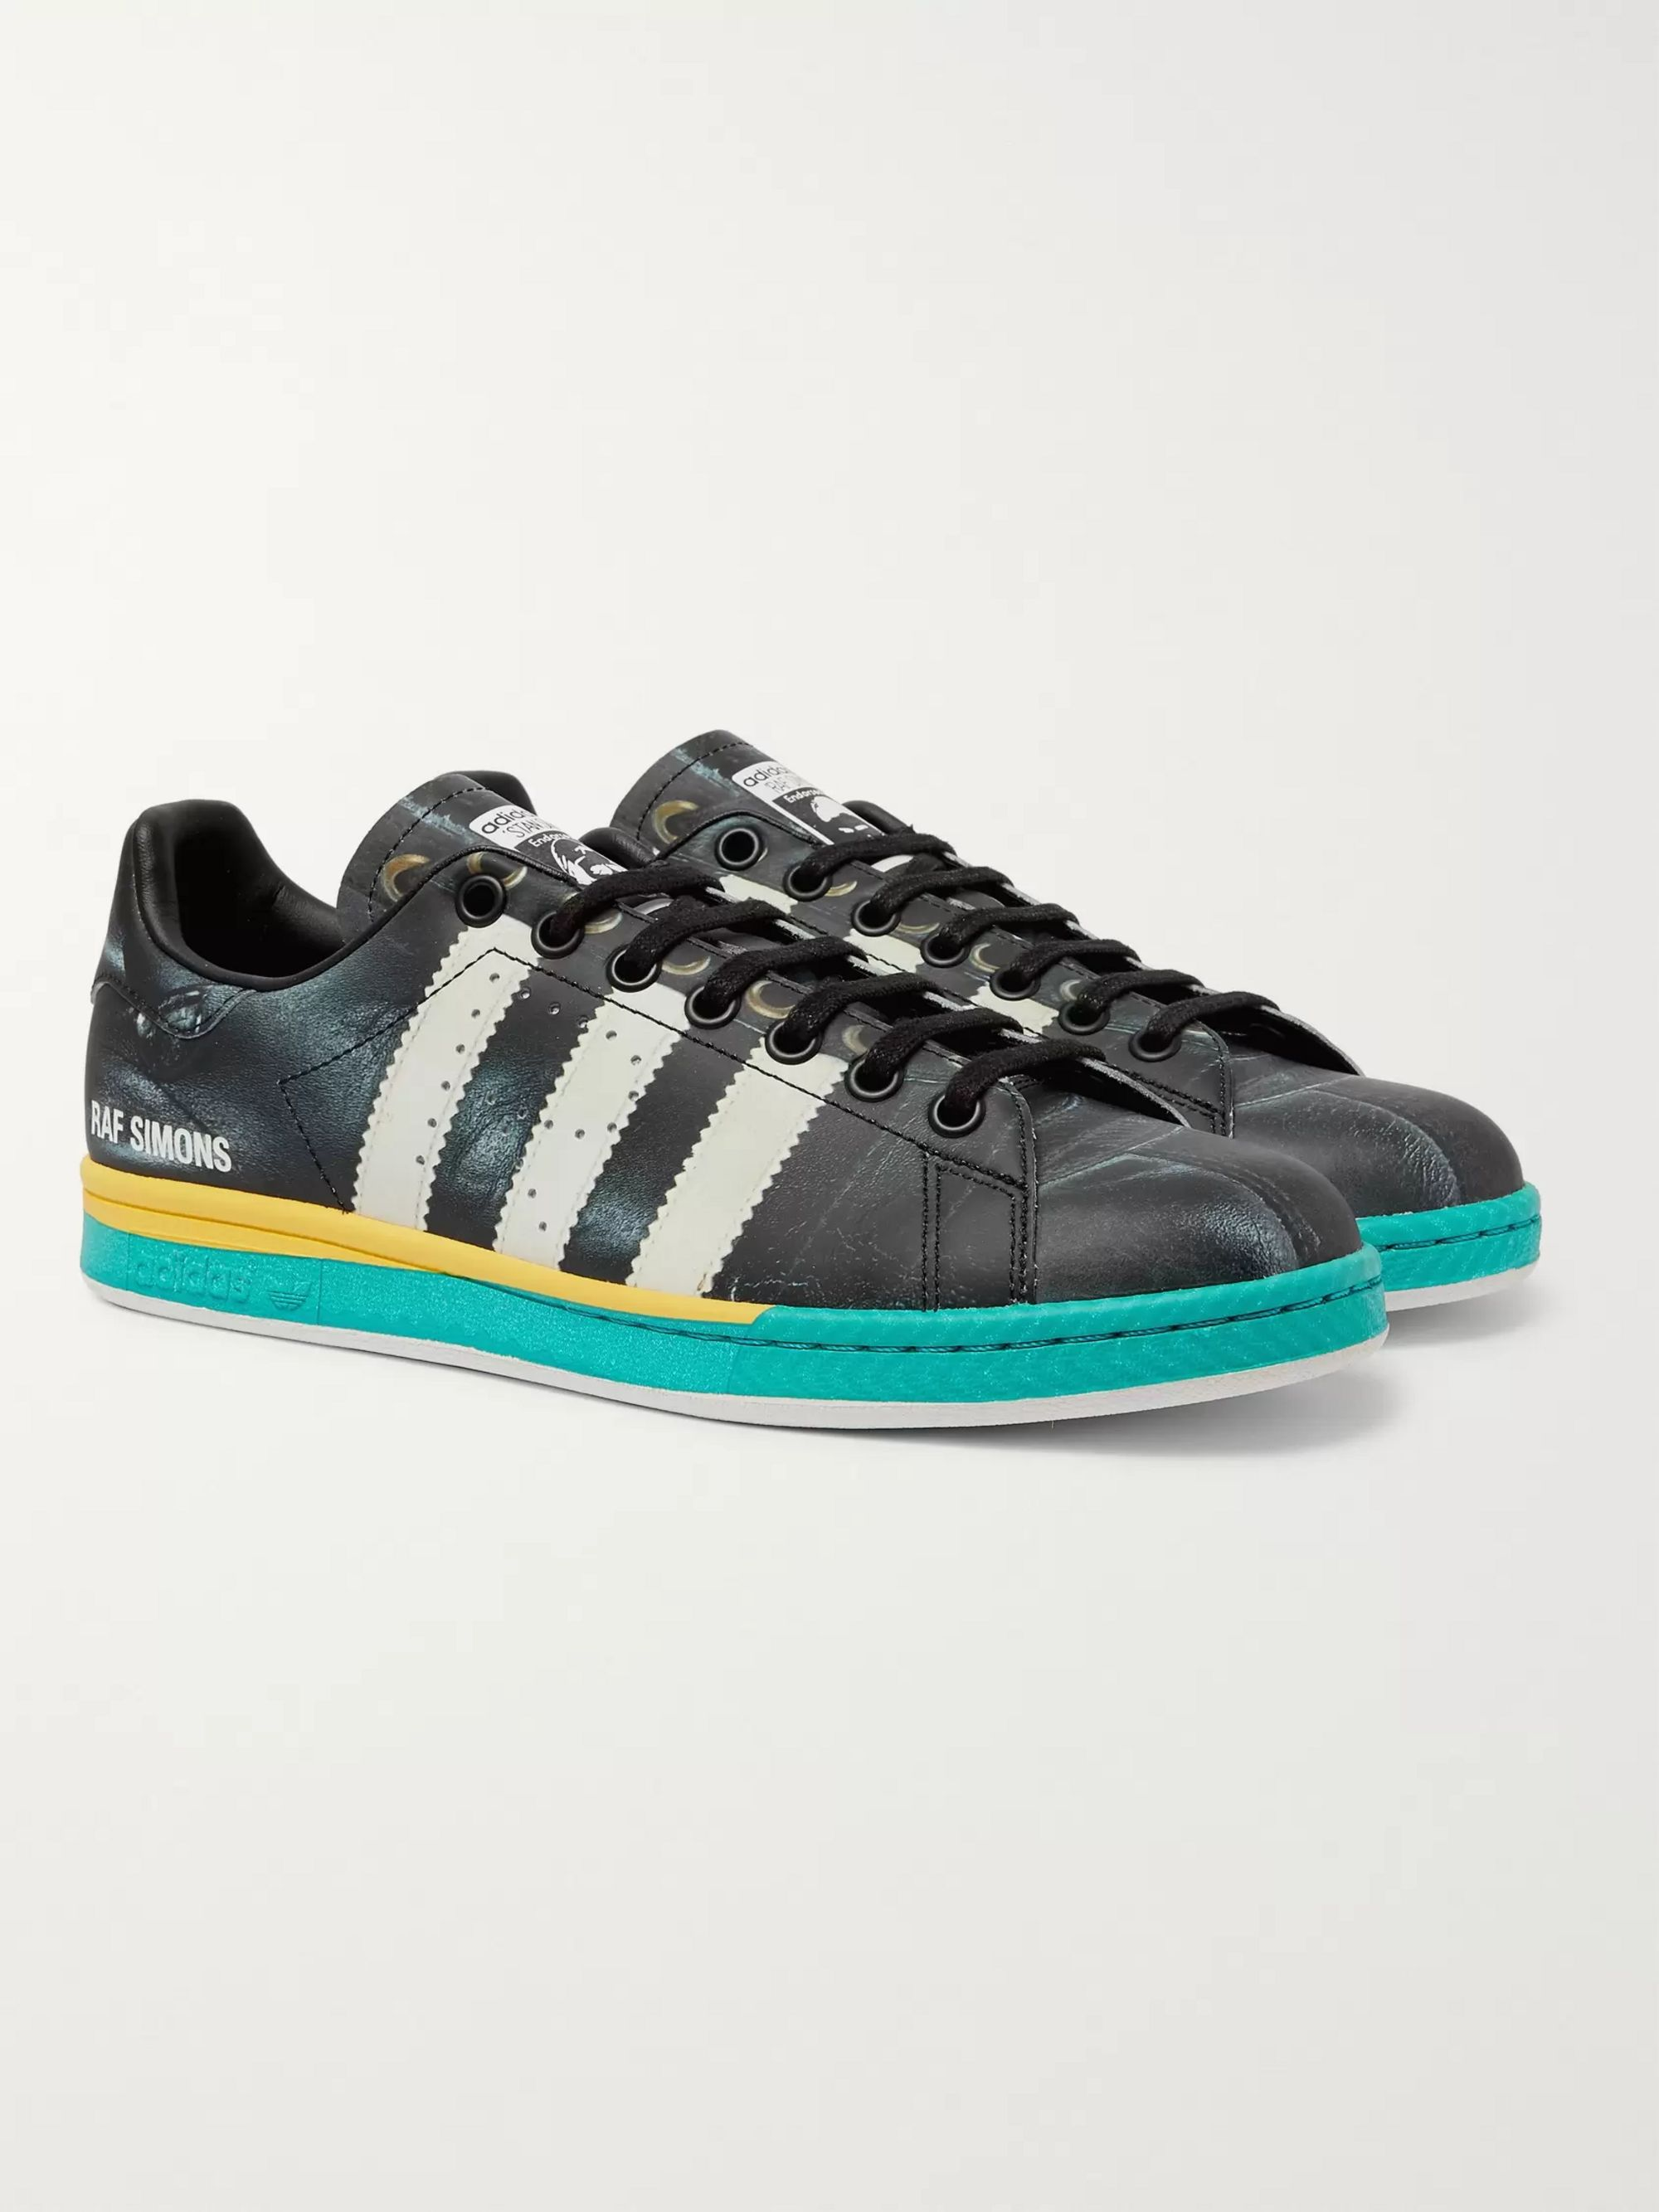 Raf Simons + adidas Originals Samba Stan Smith Printed Leather Sneakers